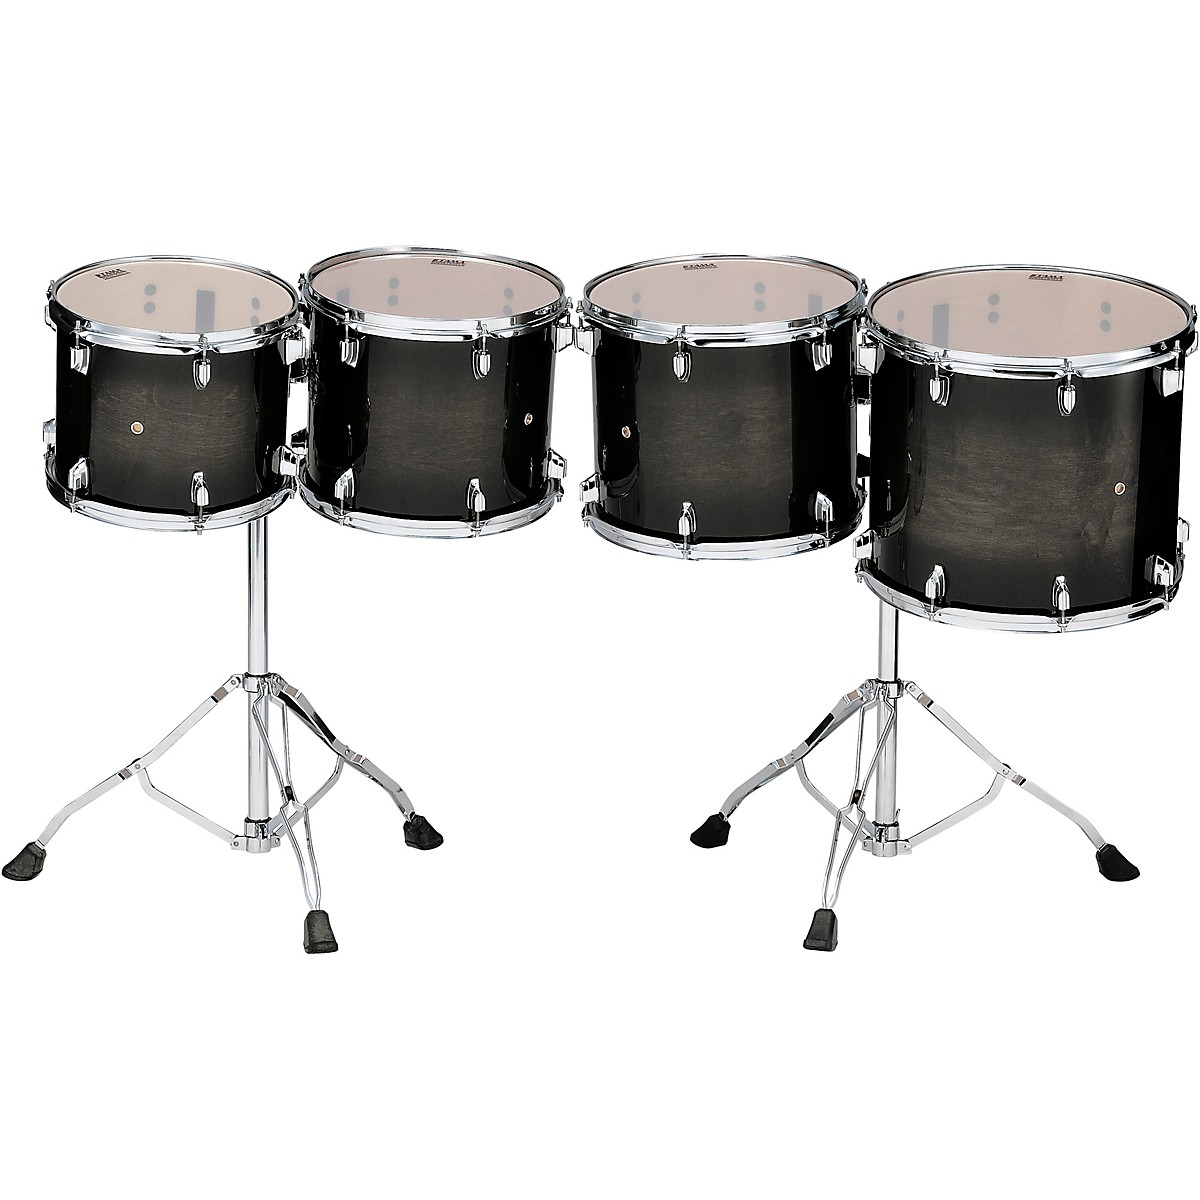 TAMA Low-Pitched Concert Tom Set With Stands (Double-Headed)